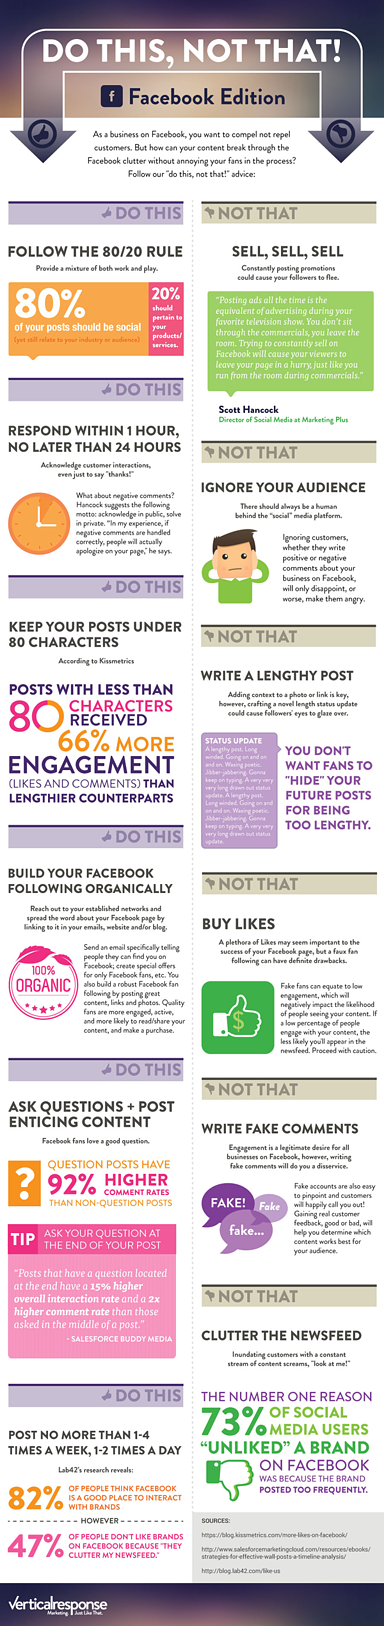 do this not that facebook edition (infographic) resized 600